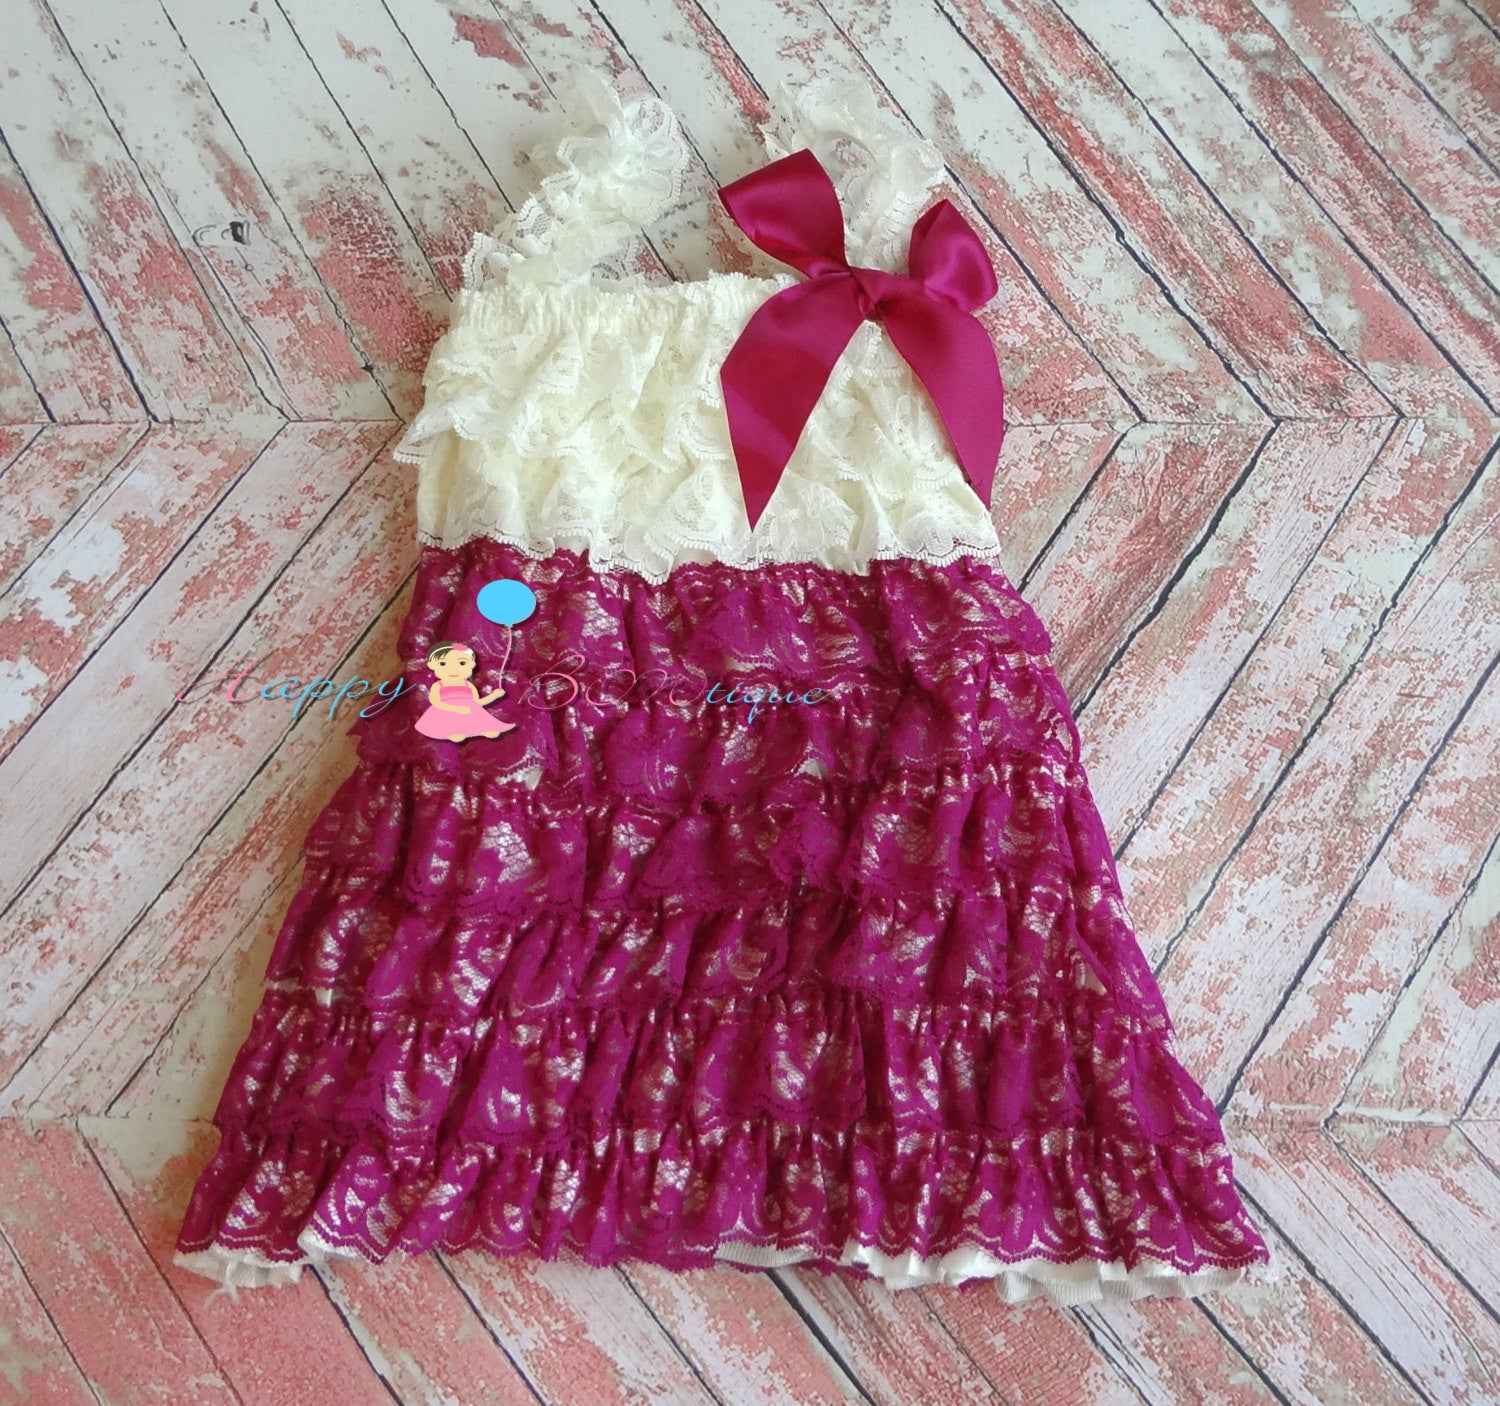 Raspberry Ivory Plum Petti Lace Dress - Happy BOWtique - children's clothing, Baby Girl clothing